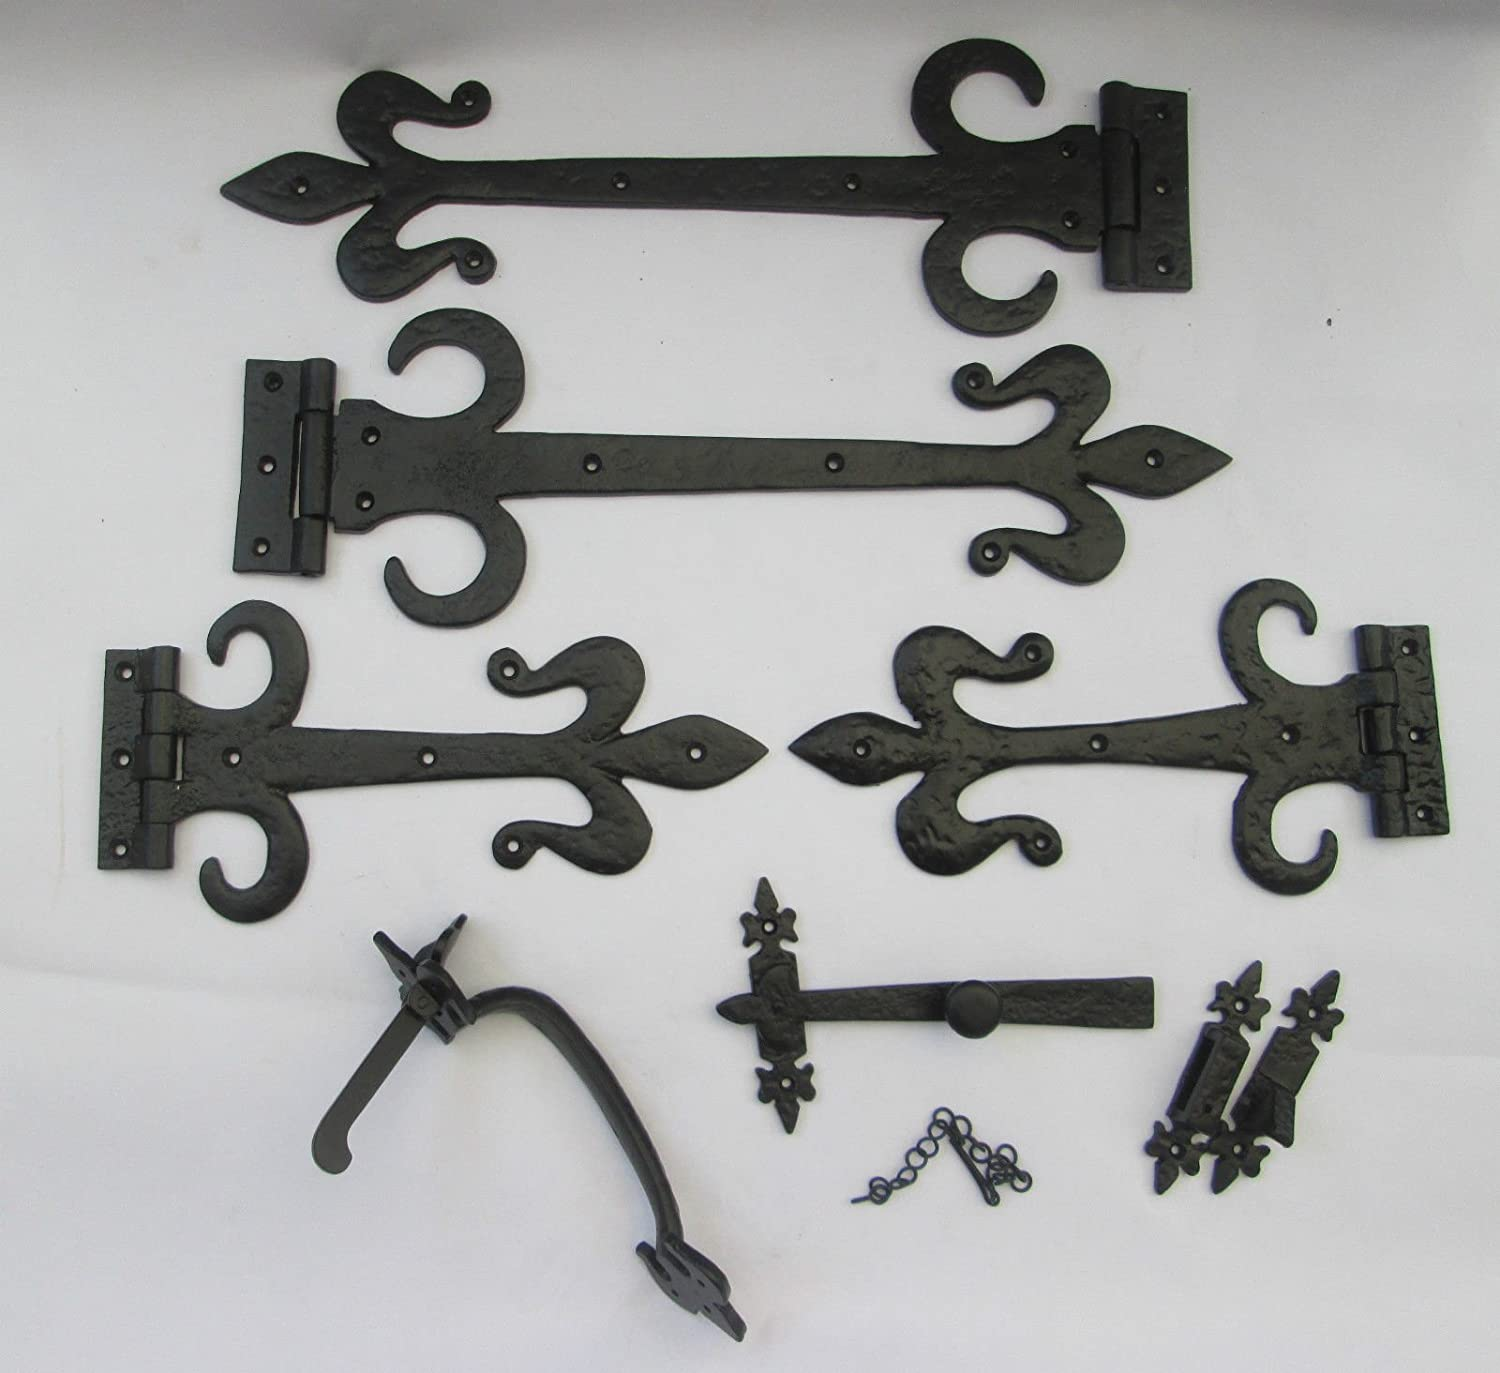 CAST IRON SUFFOLK COTTAGE LATCH DECORATIVE ORNATE DOOR TEE HINGES T HINGE SET